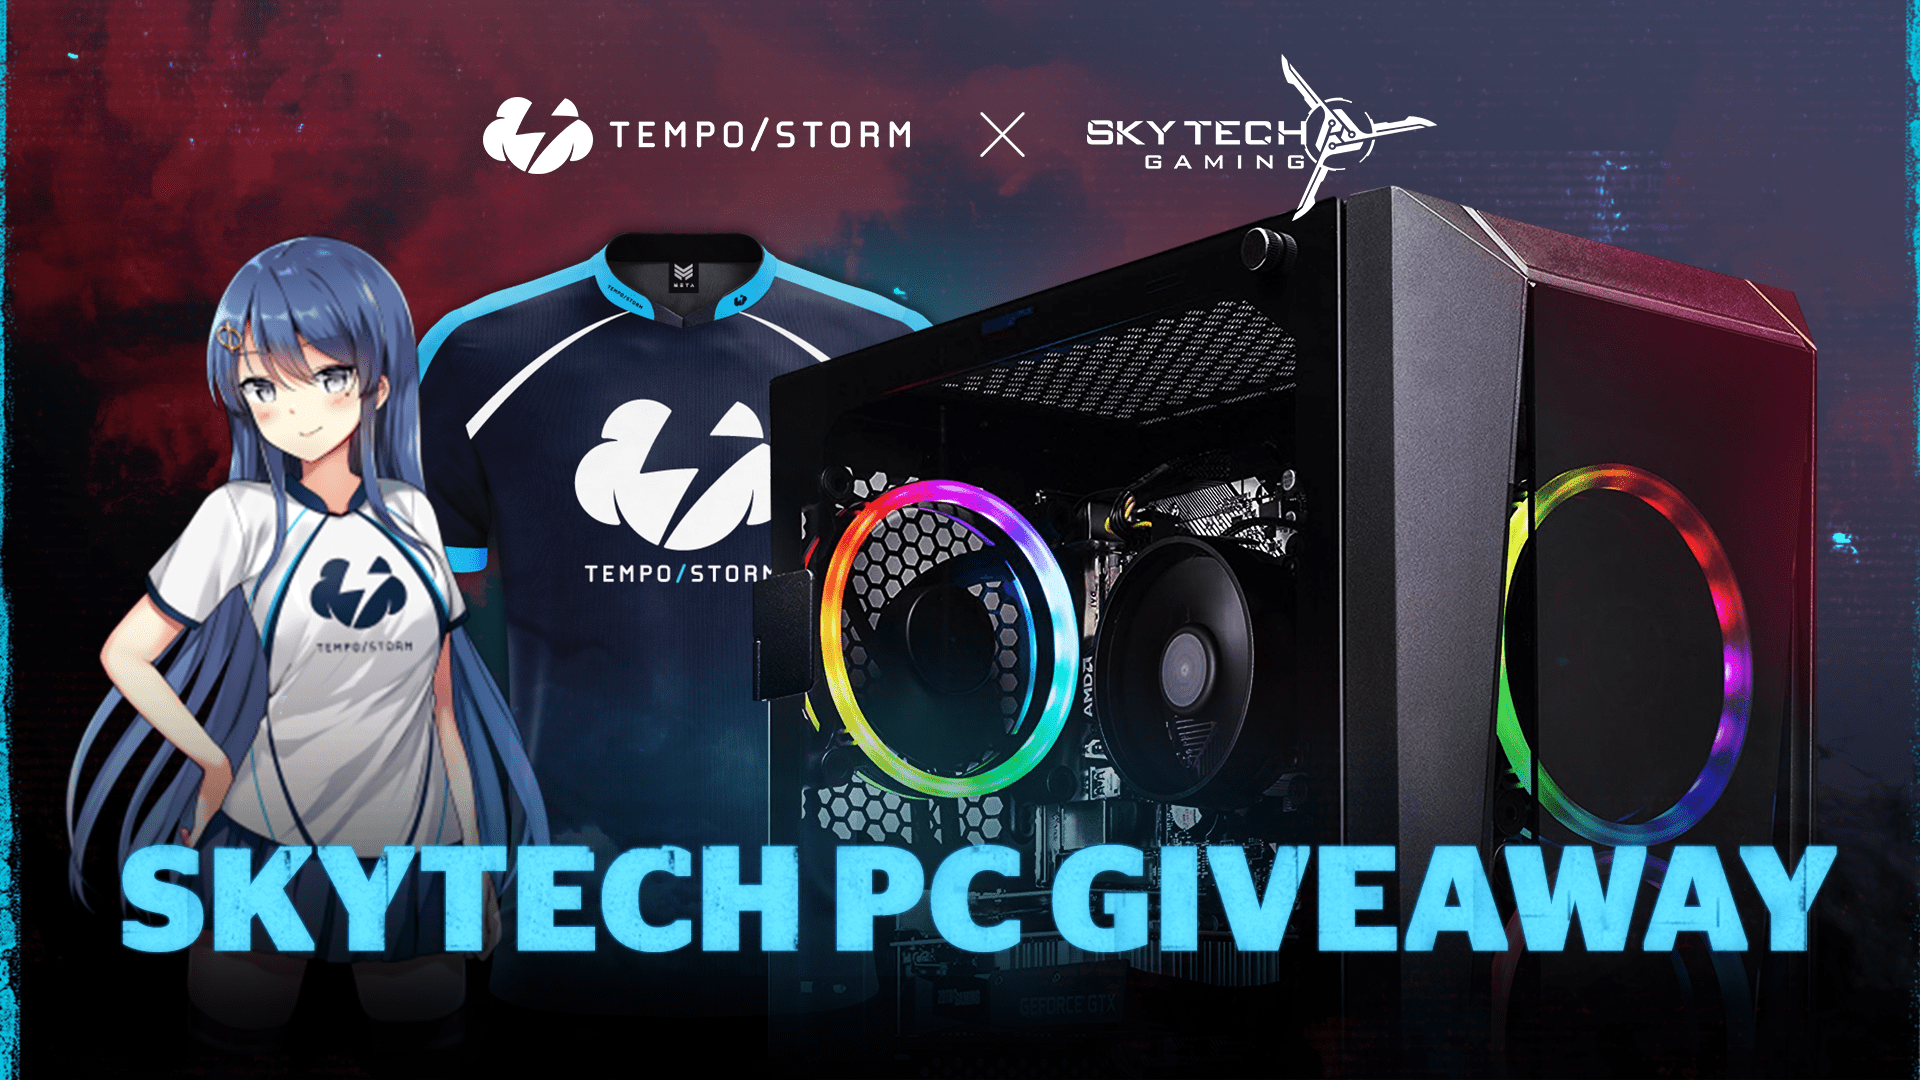 online contests, sweepstakes and giveaways - Skytech Gaming PC Giveaway